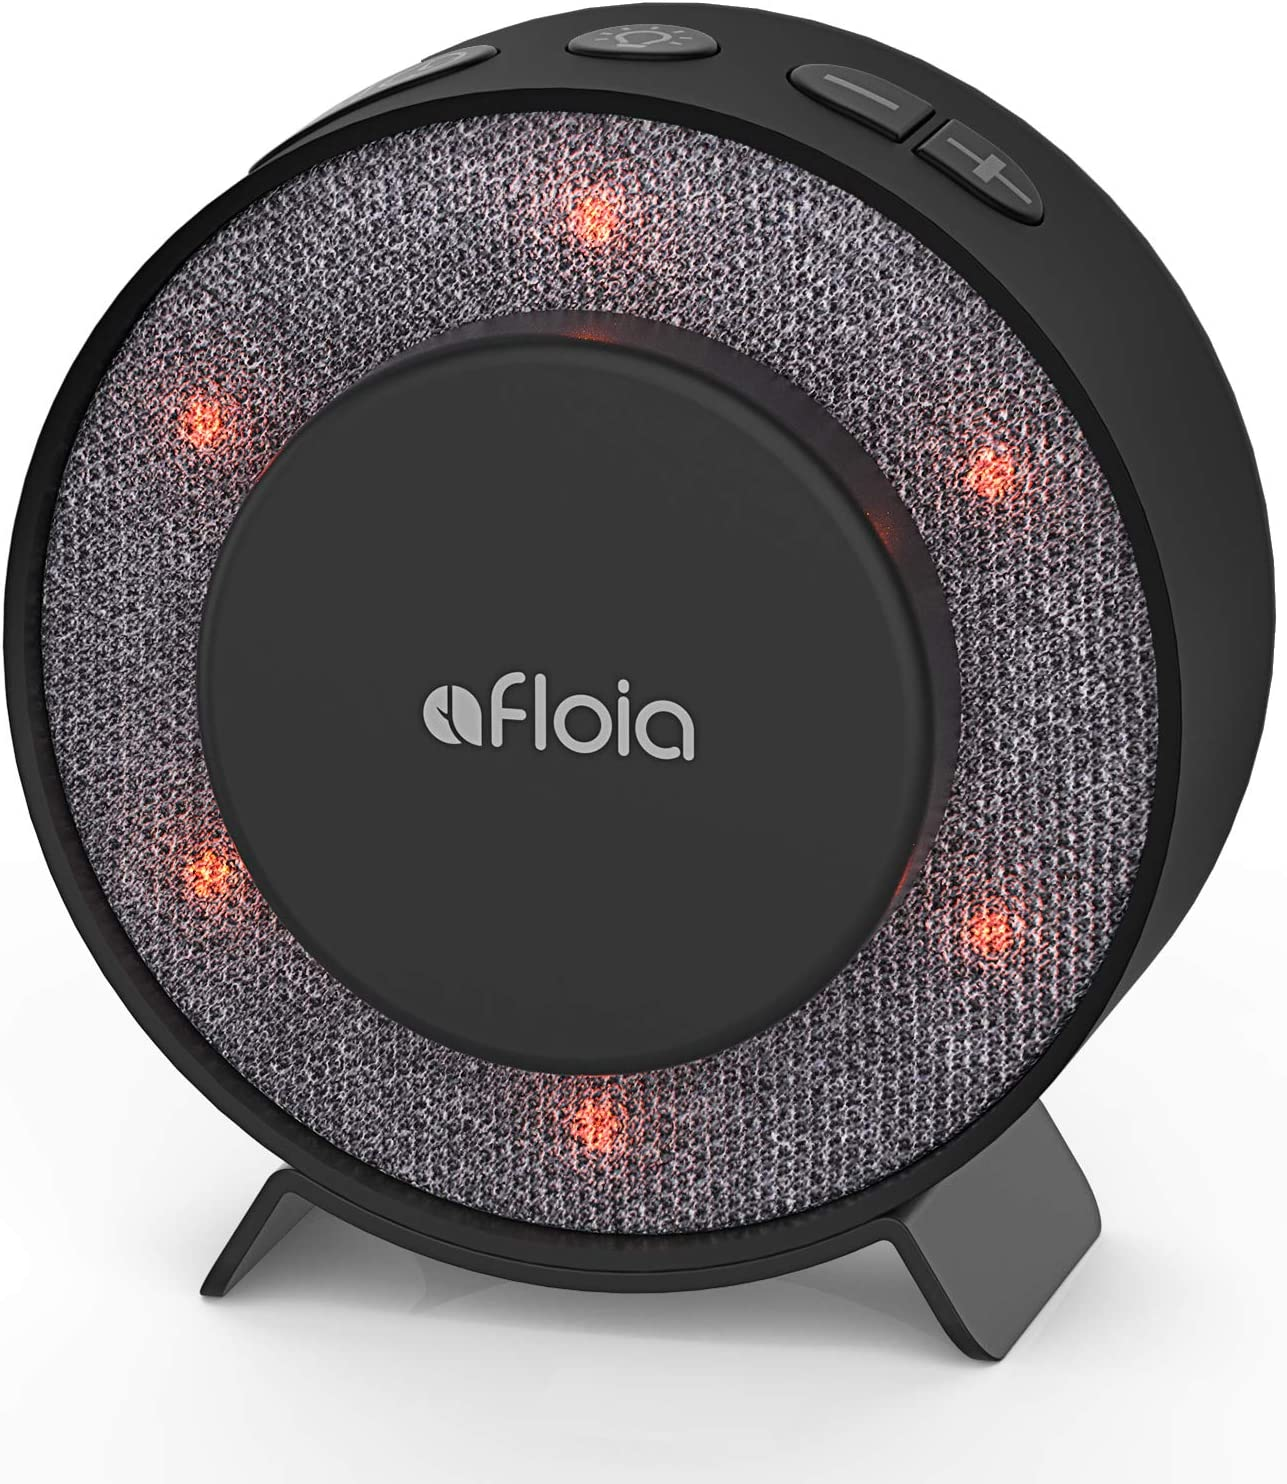 Afloia White Noise Sound Machine for Sleeping Baby Kid Adult, 6 High Fidelity Sleep Machine Soundtracks, Night Light and Timer, Noise Machine for Home Nursery Office(Black)